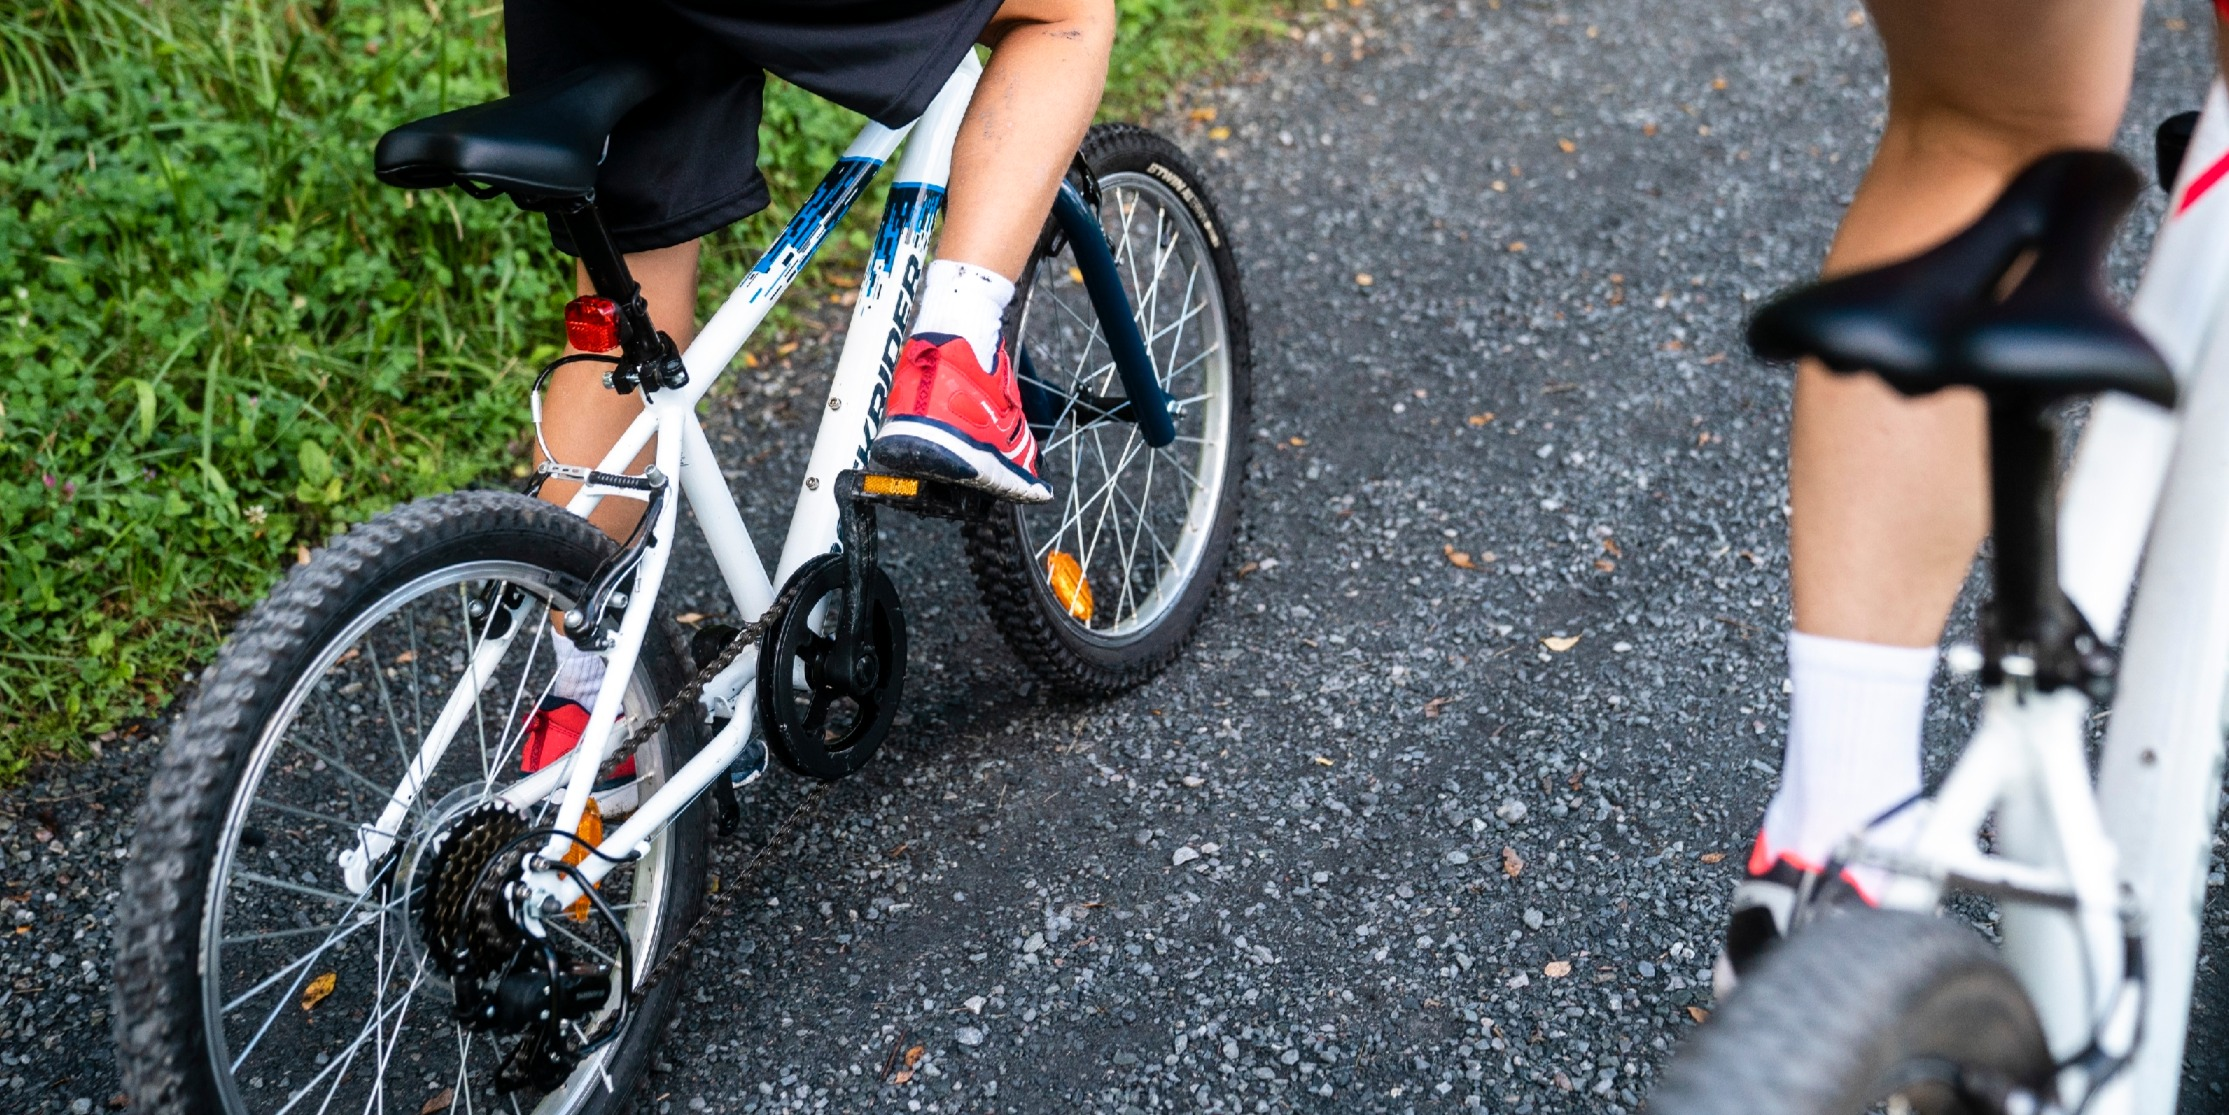 Which Kit Do Kids Need To Start Cycling For Beginners?